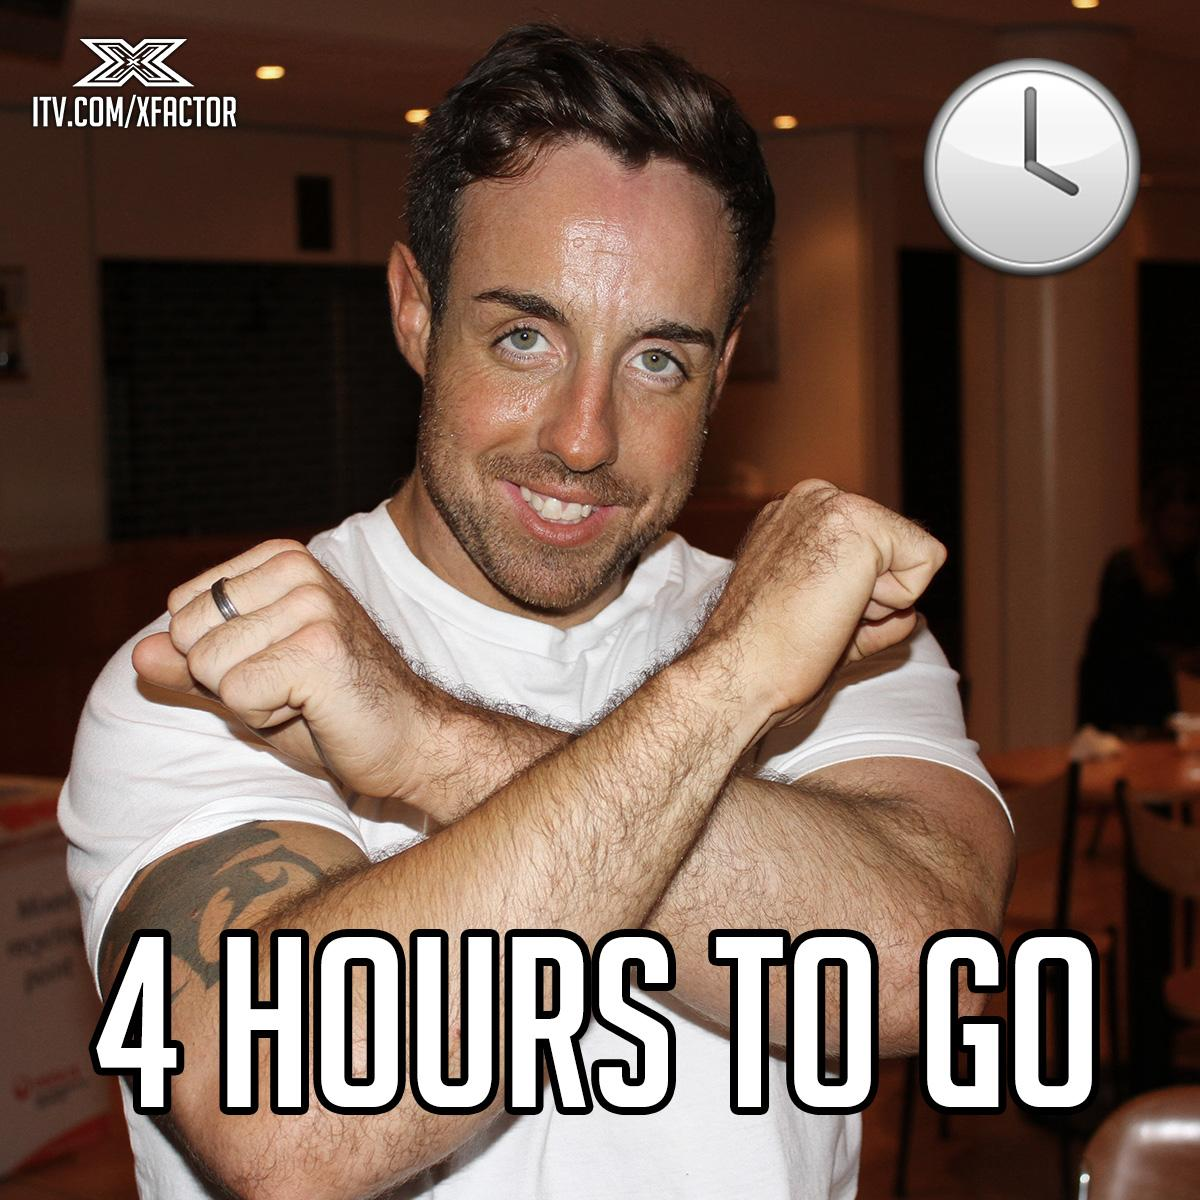 .@THESTEVIRITCHIE's limbering up for his #XFactorMoviesWeek performance... 👯 TONIGHT. 8pm. @ITV. http://t.co/pn9dzl58E3